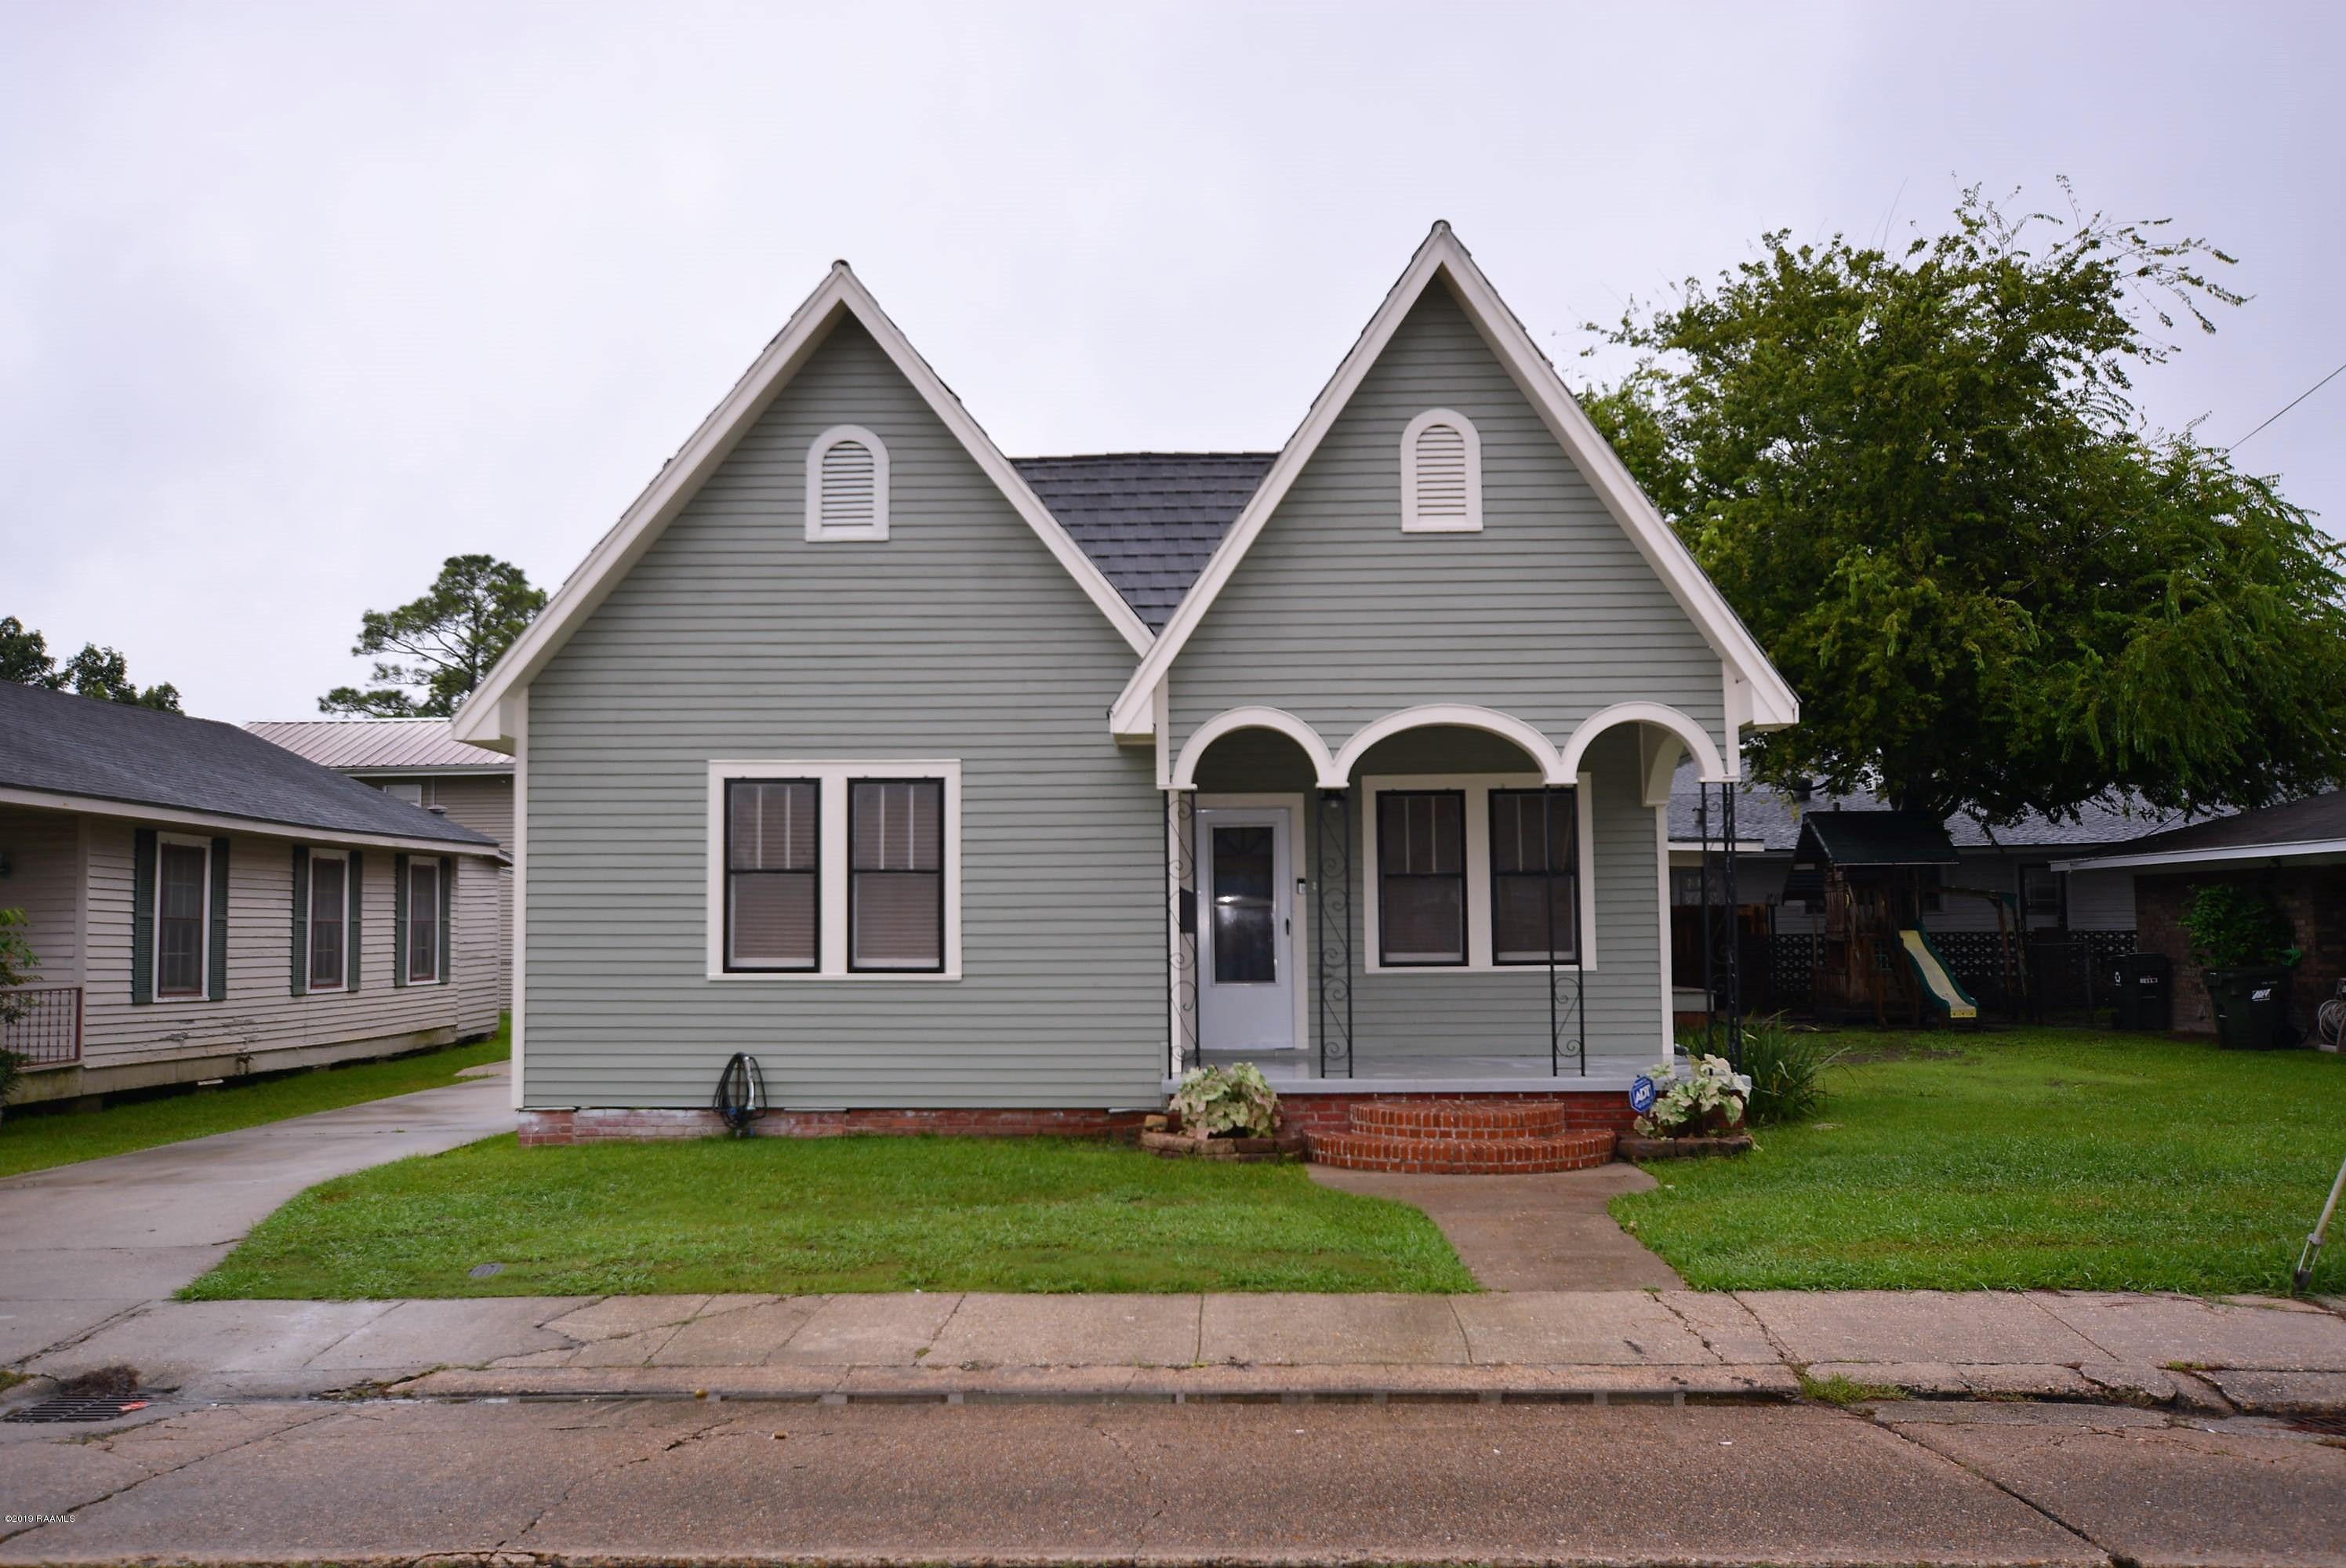 124 Washington Street E, New Iberia, LA 70560 Photo #1